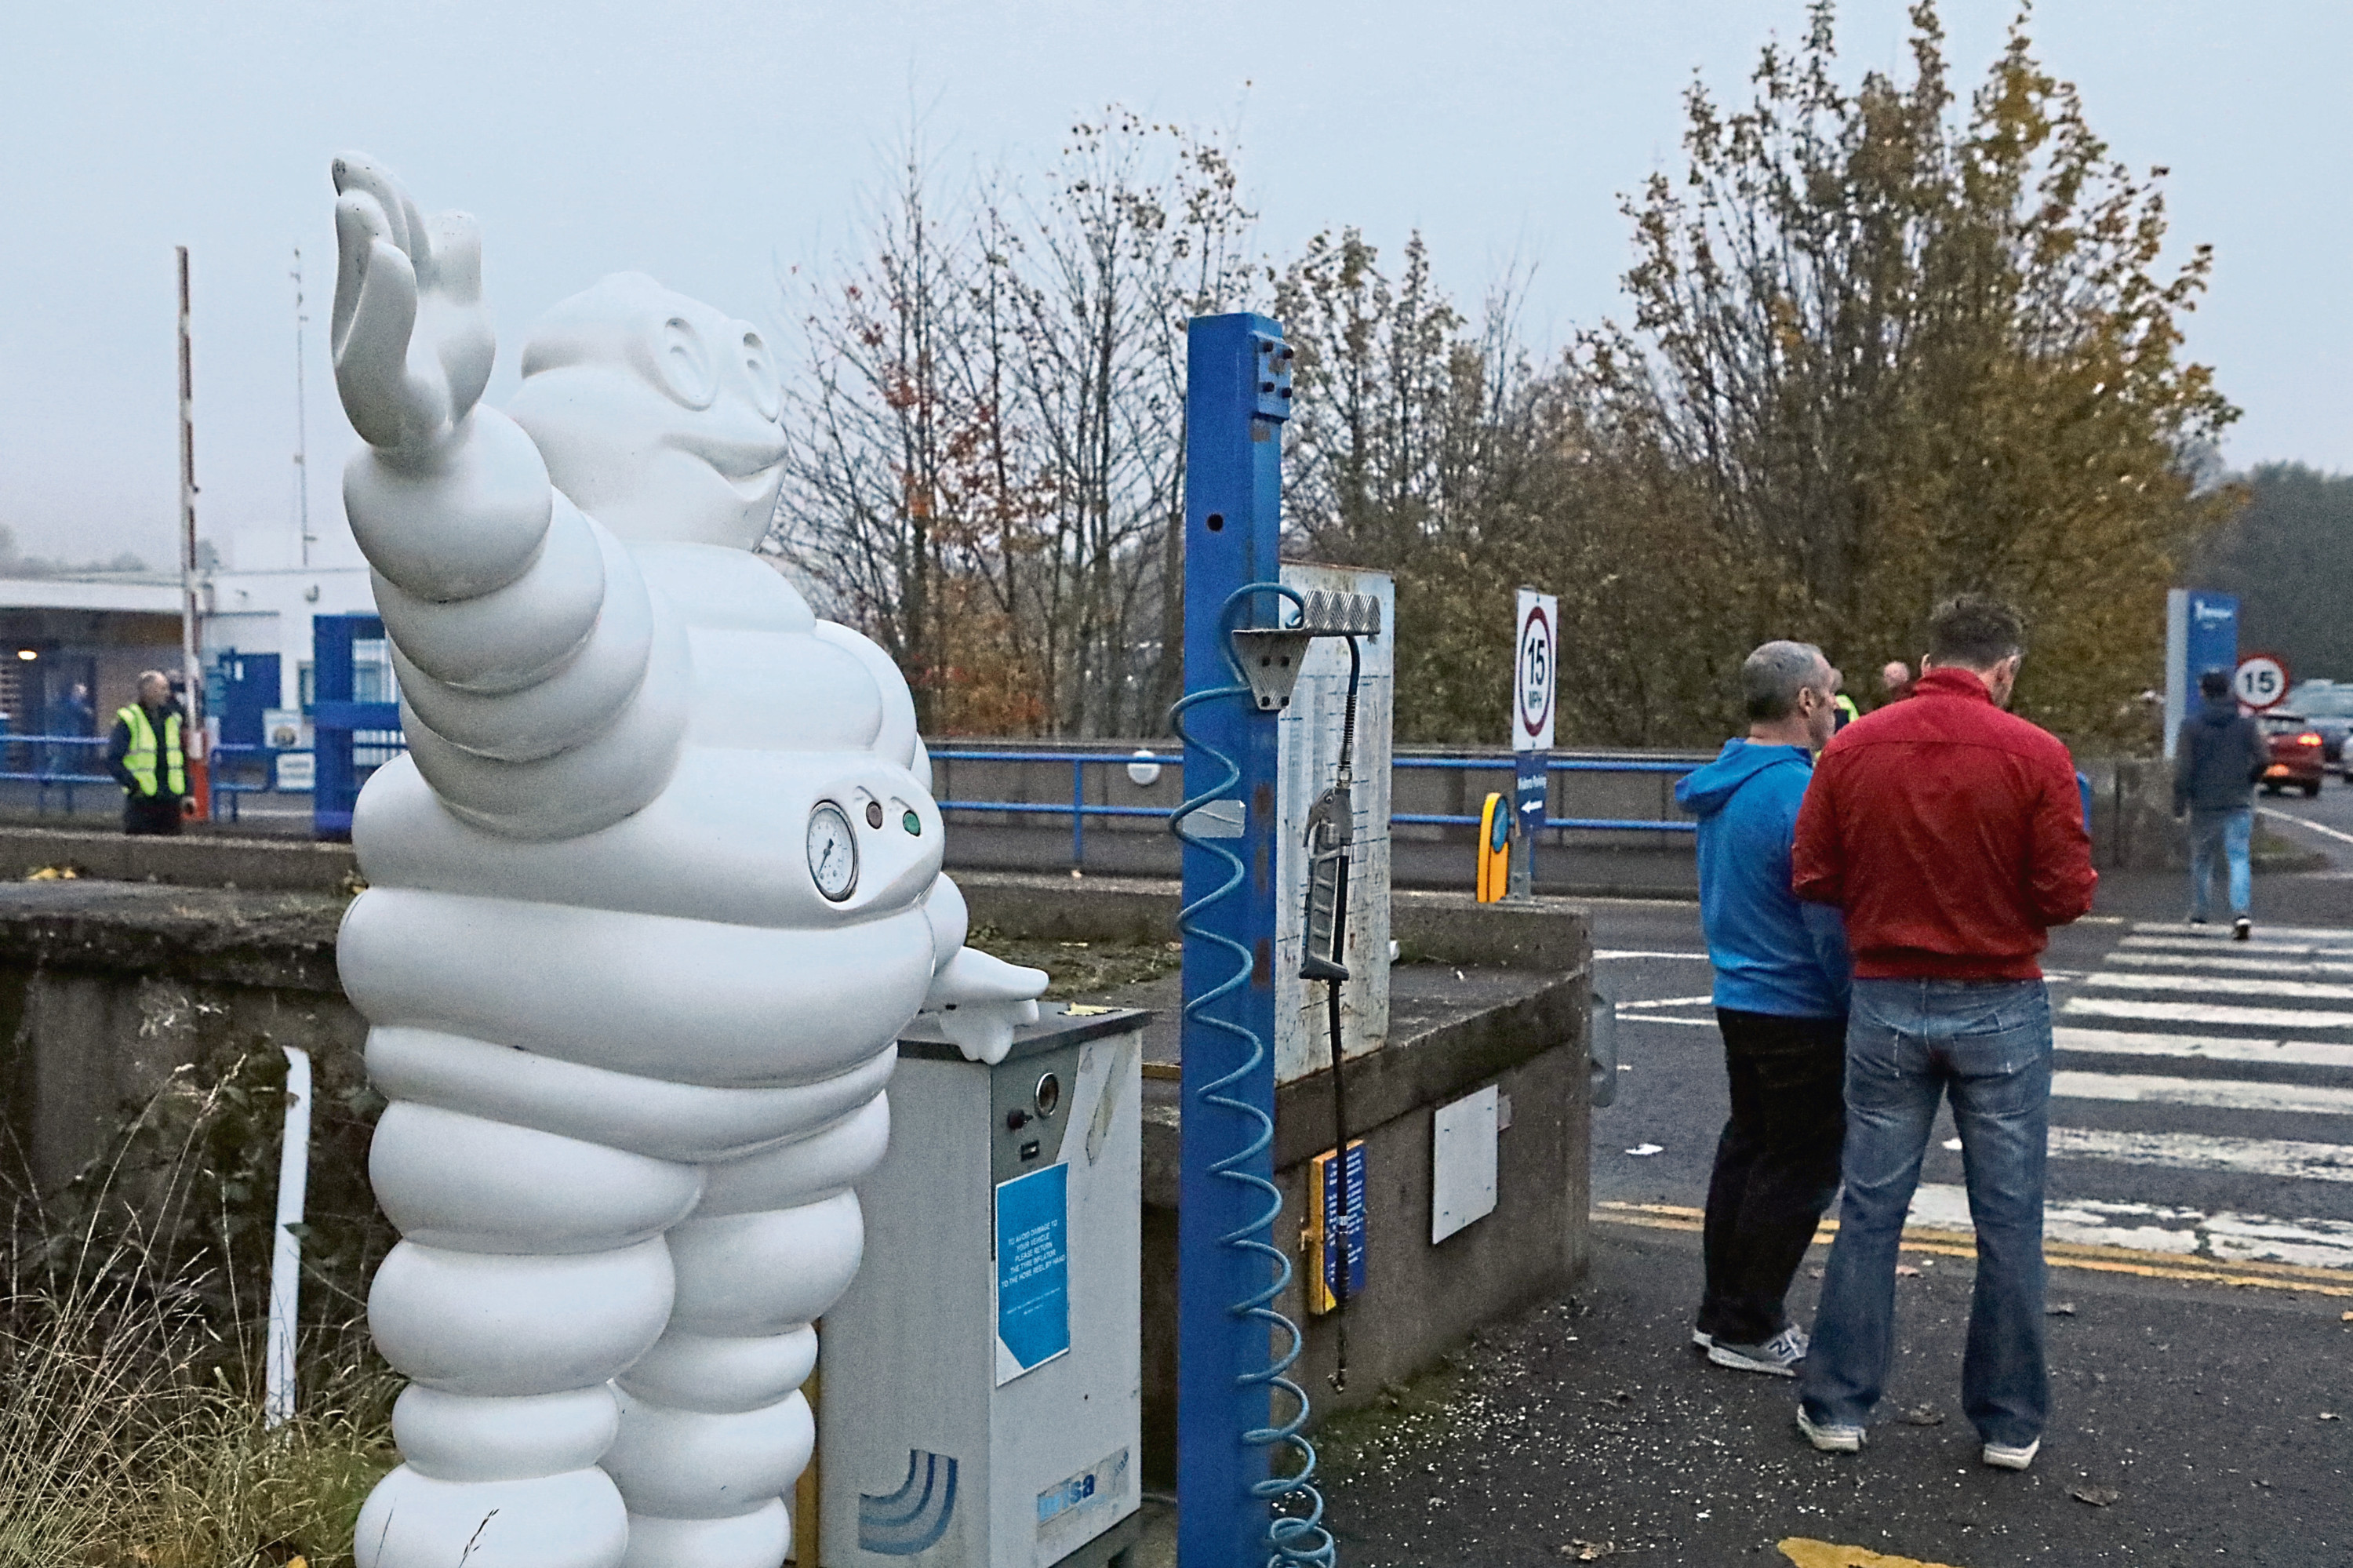 Workers outside the Michelin factory on Tuesday.